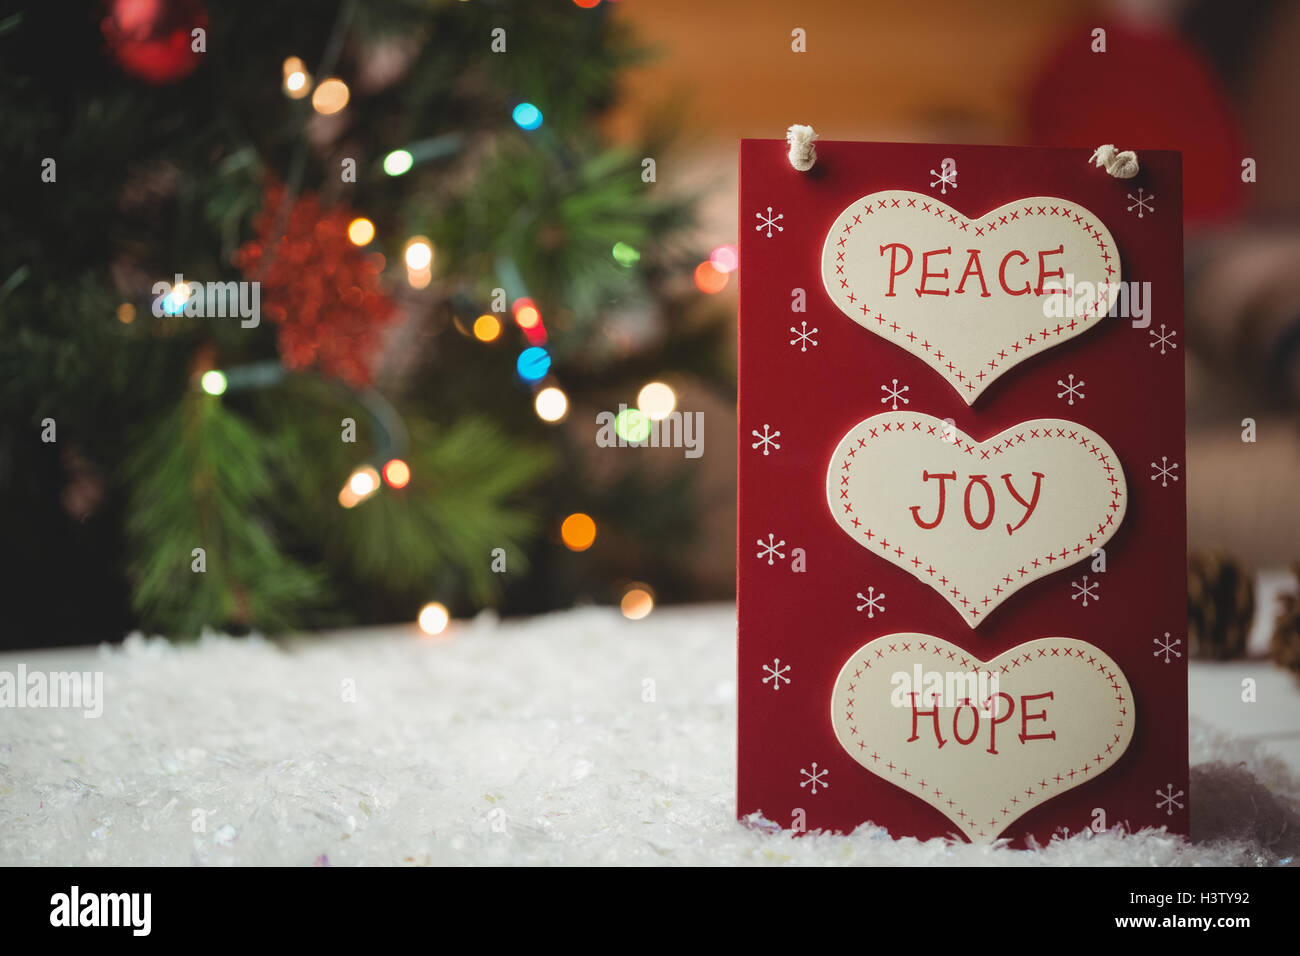 Christmas label with massages of peace, joy and hope - Stock Image